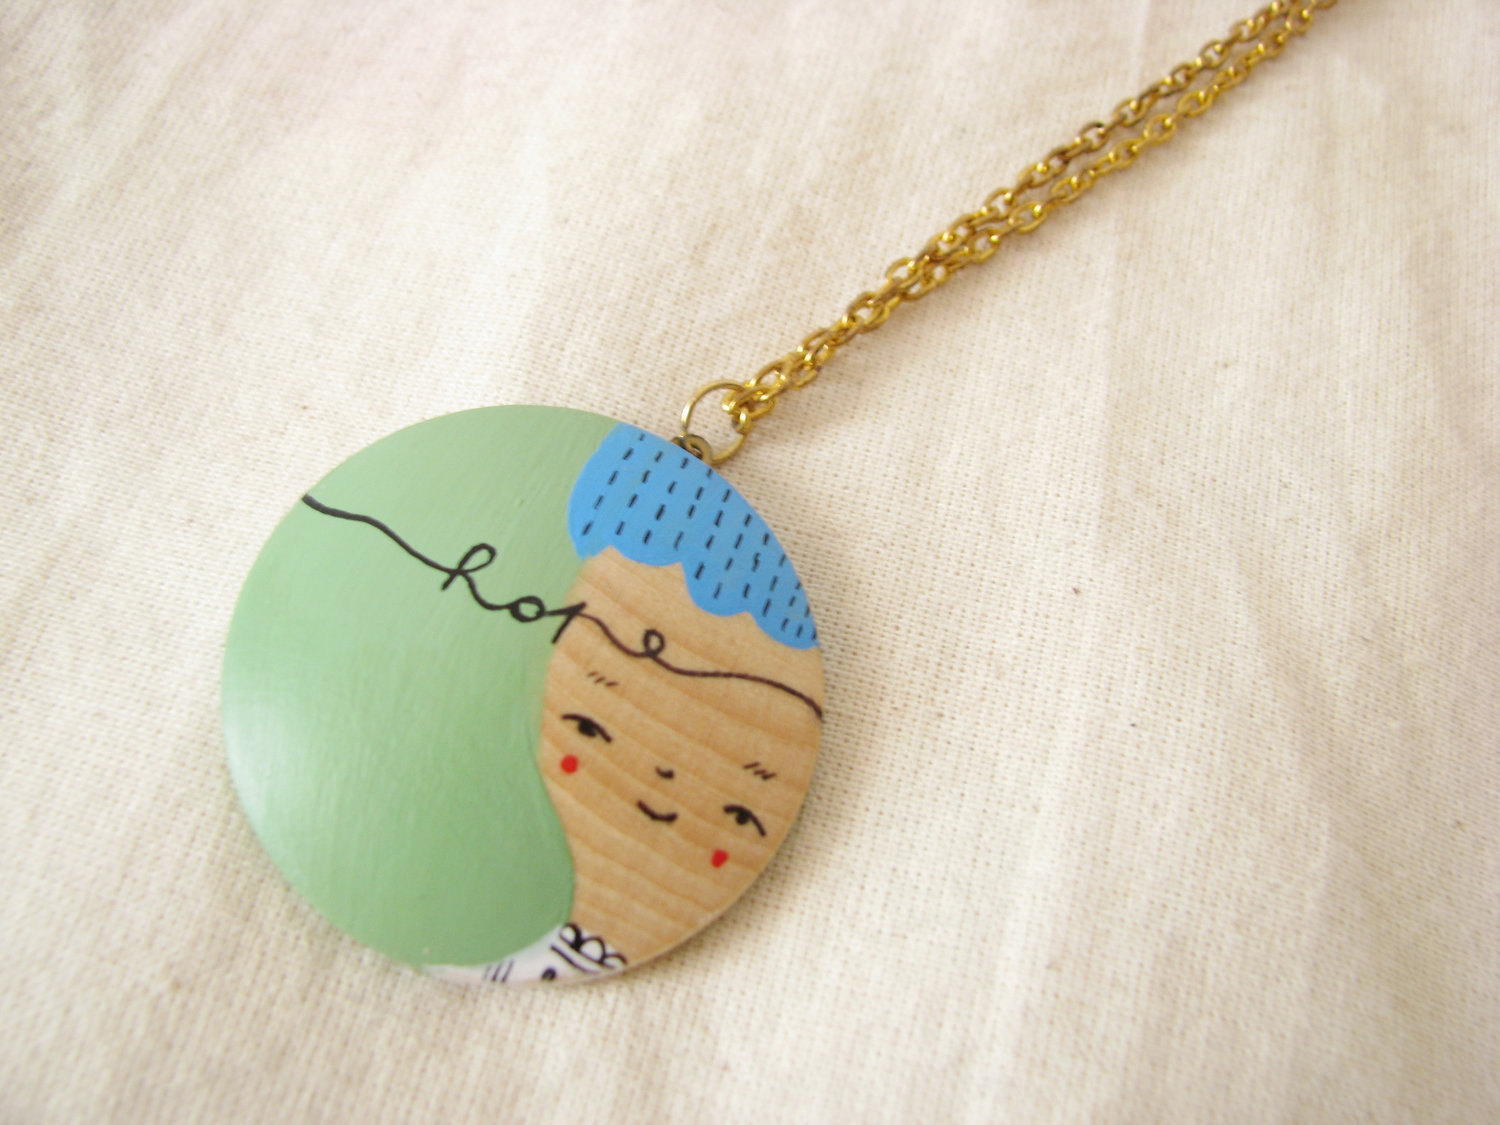 Hand painted illustrated wooden necklace pendant wearable art on luulla hand painted illustrated wooden necklace pendant wearable art mozeypictures Choice Image